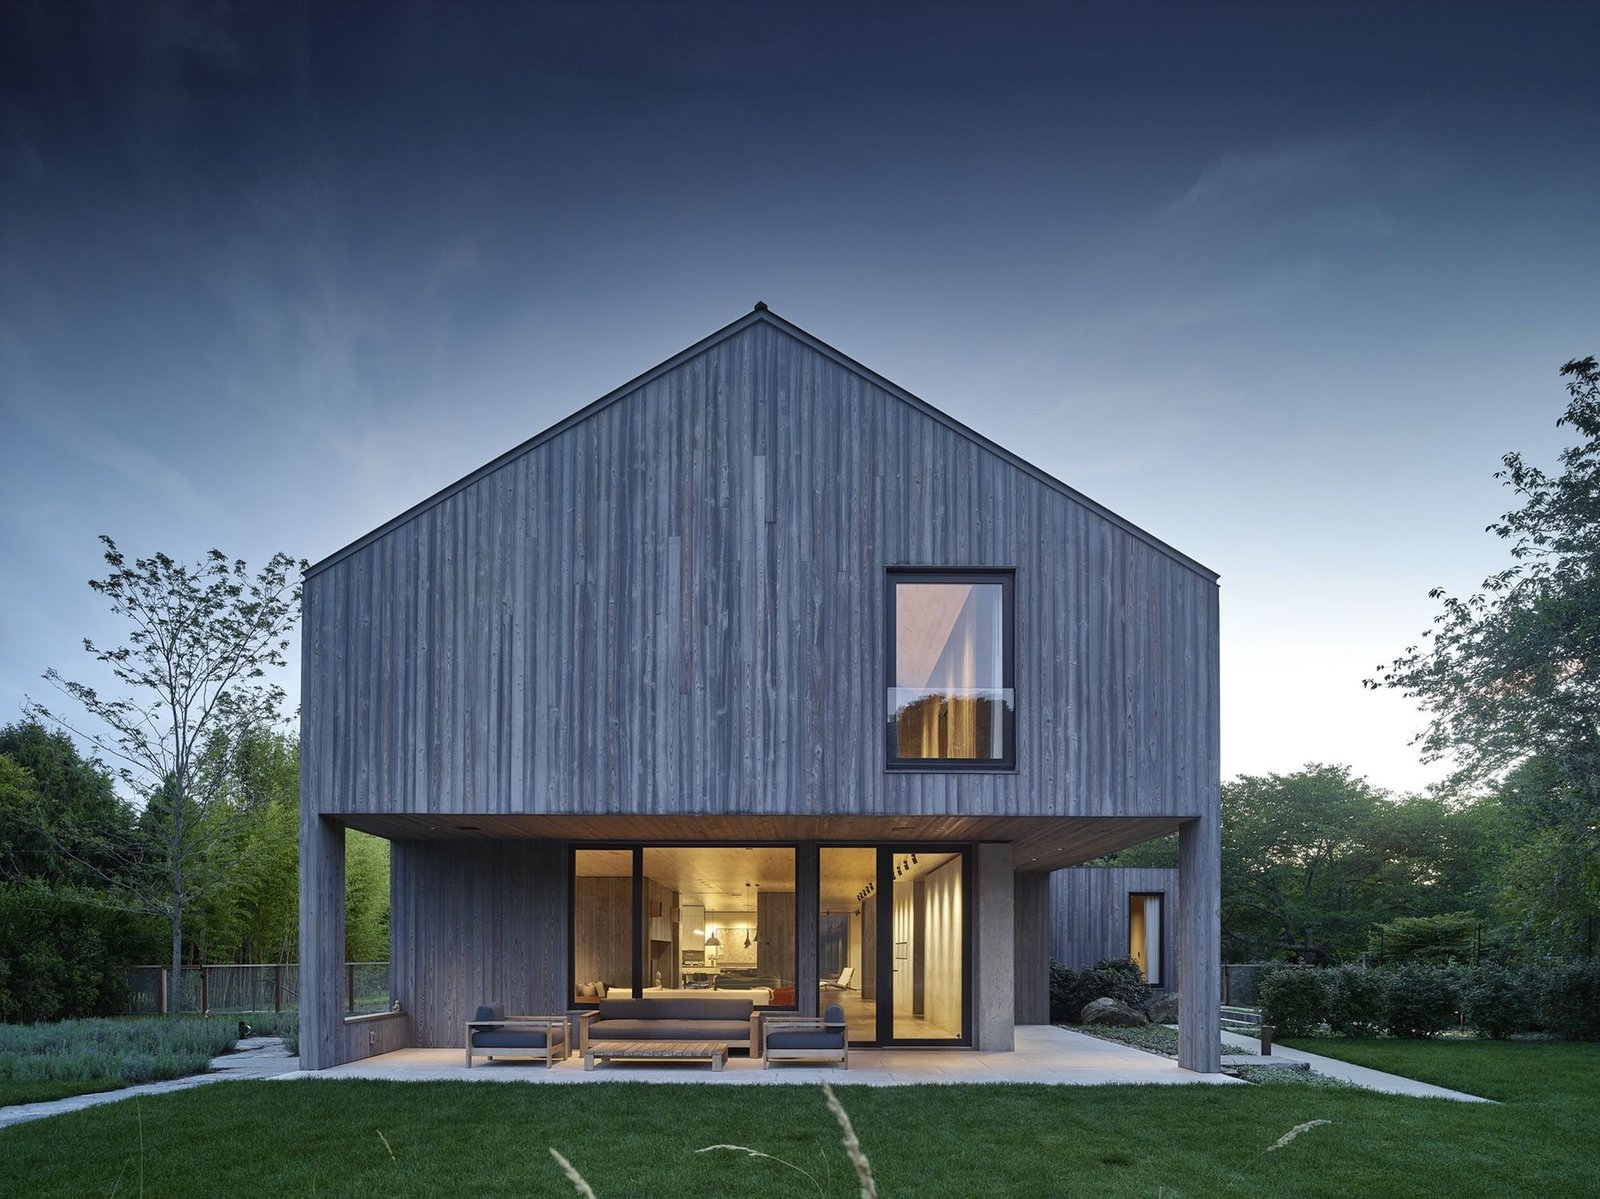 Exterior, Wood Siding Material, Concrete Siding Material, Gable RoofLine, and Metal Roof Material Charred cypress siding by ReSwan Timber Co.  Photos from My Choice